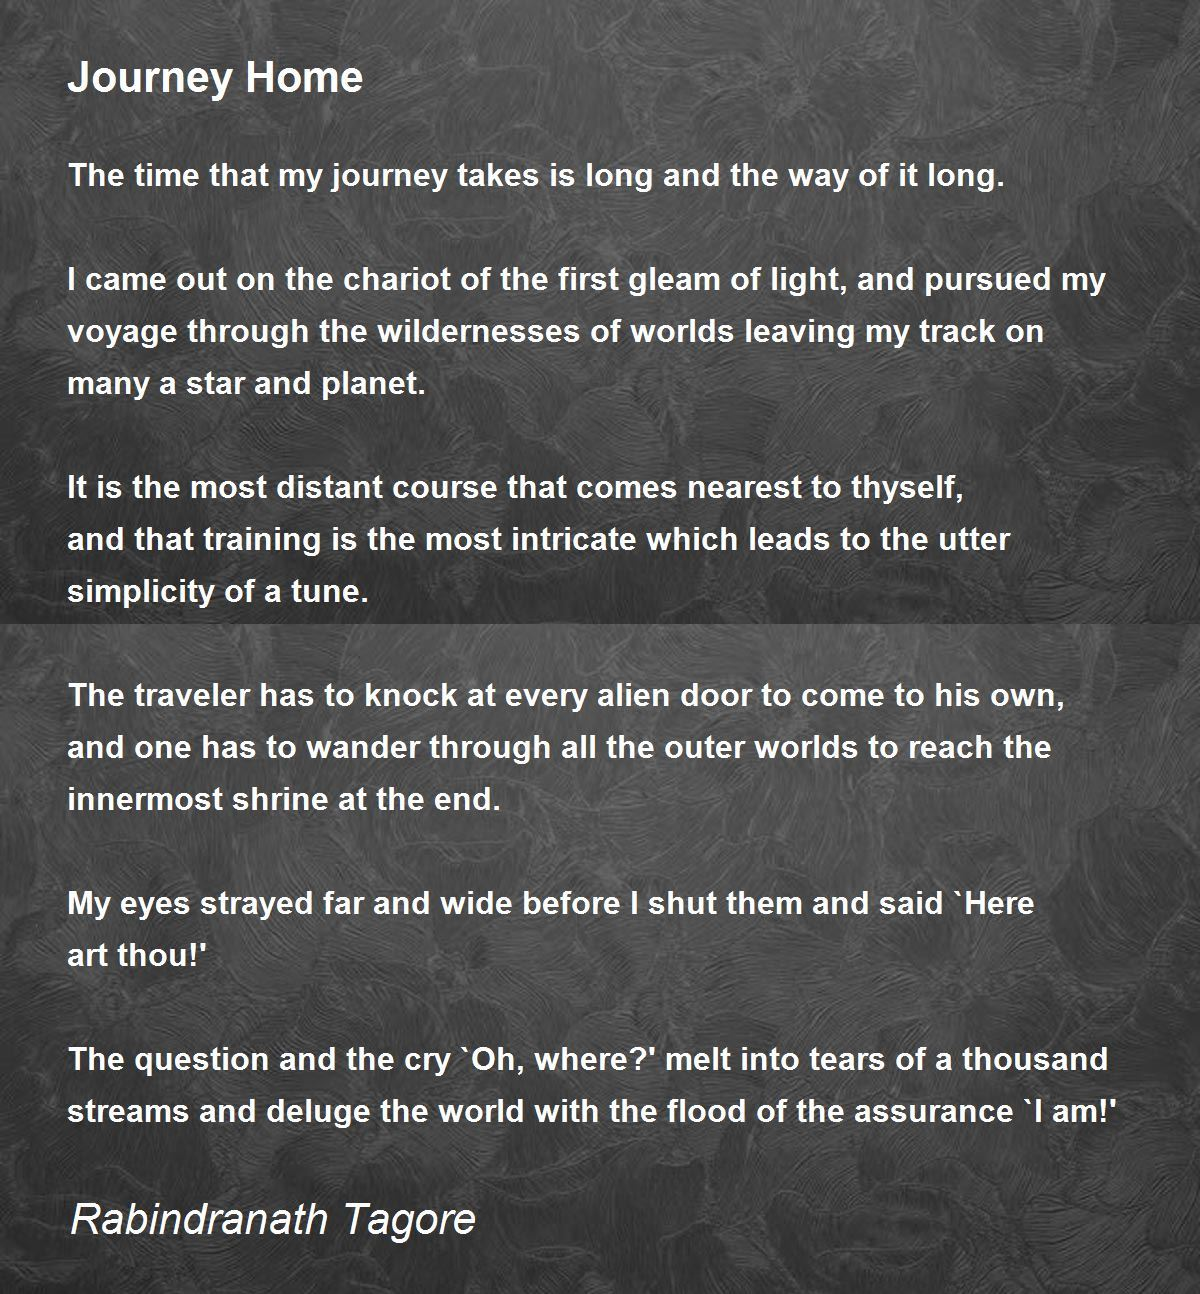 Journey Home Poem by Rabindranath Tagore - Poem Hunter